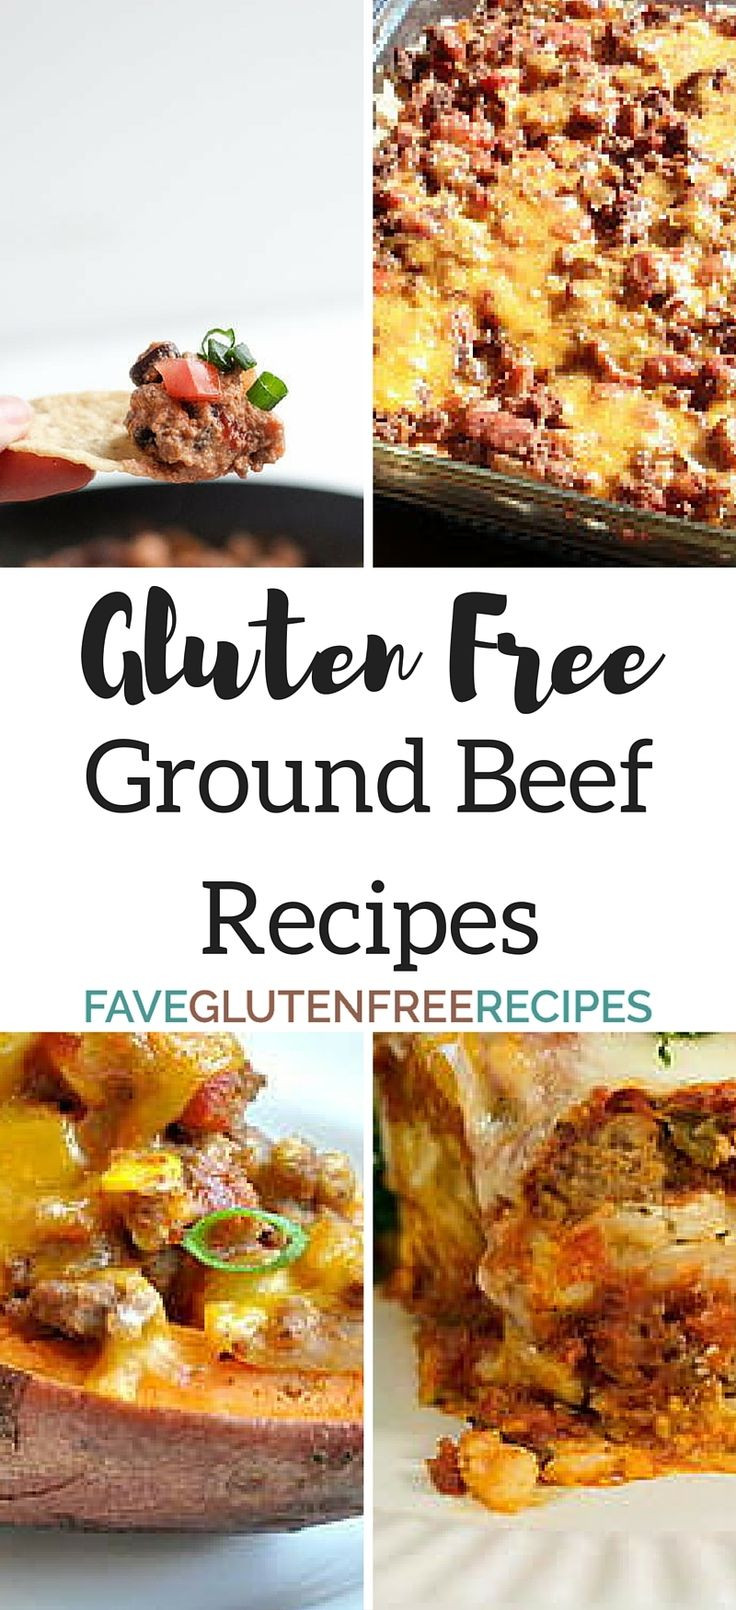 Gluten Free Recipes With Ground Beef  1000 images about GLUTIN FREE FOODS on Pinterest